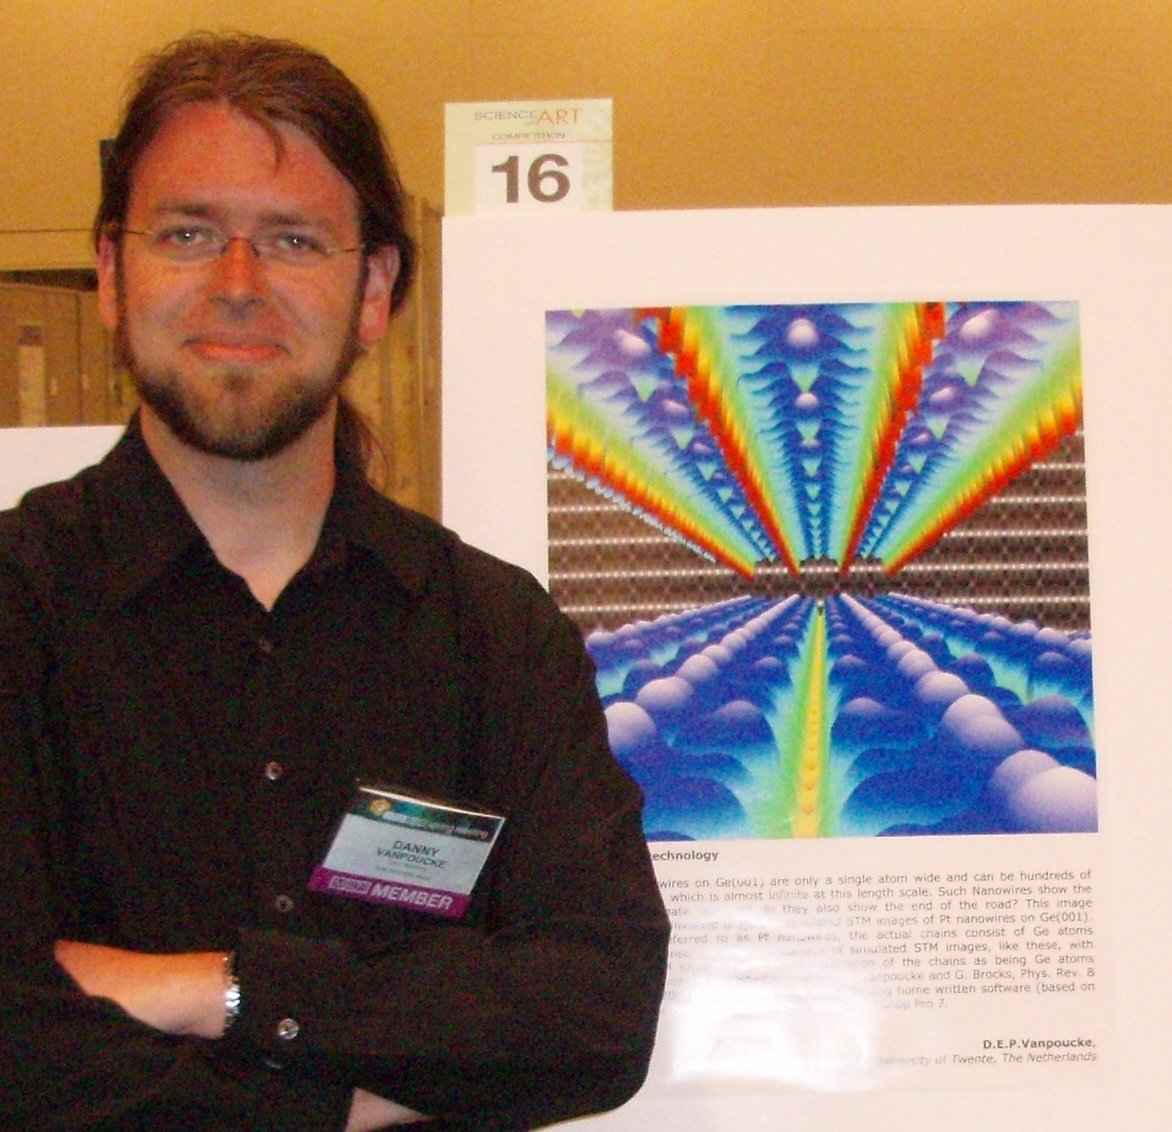 Me at the 2009 MRS spring meeting with my contribution to the Science as Art Competition.